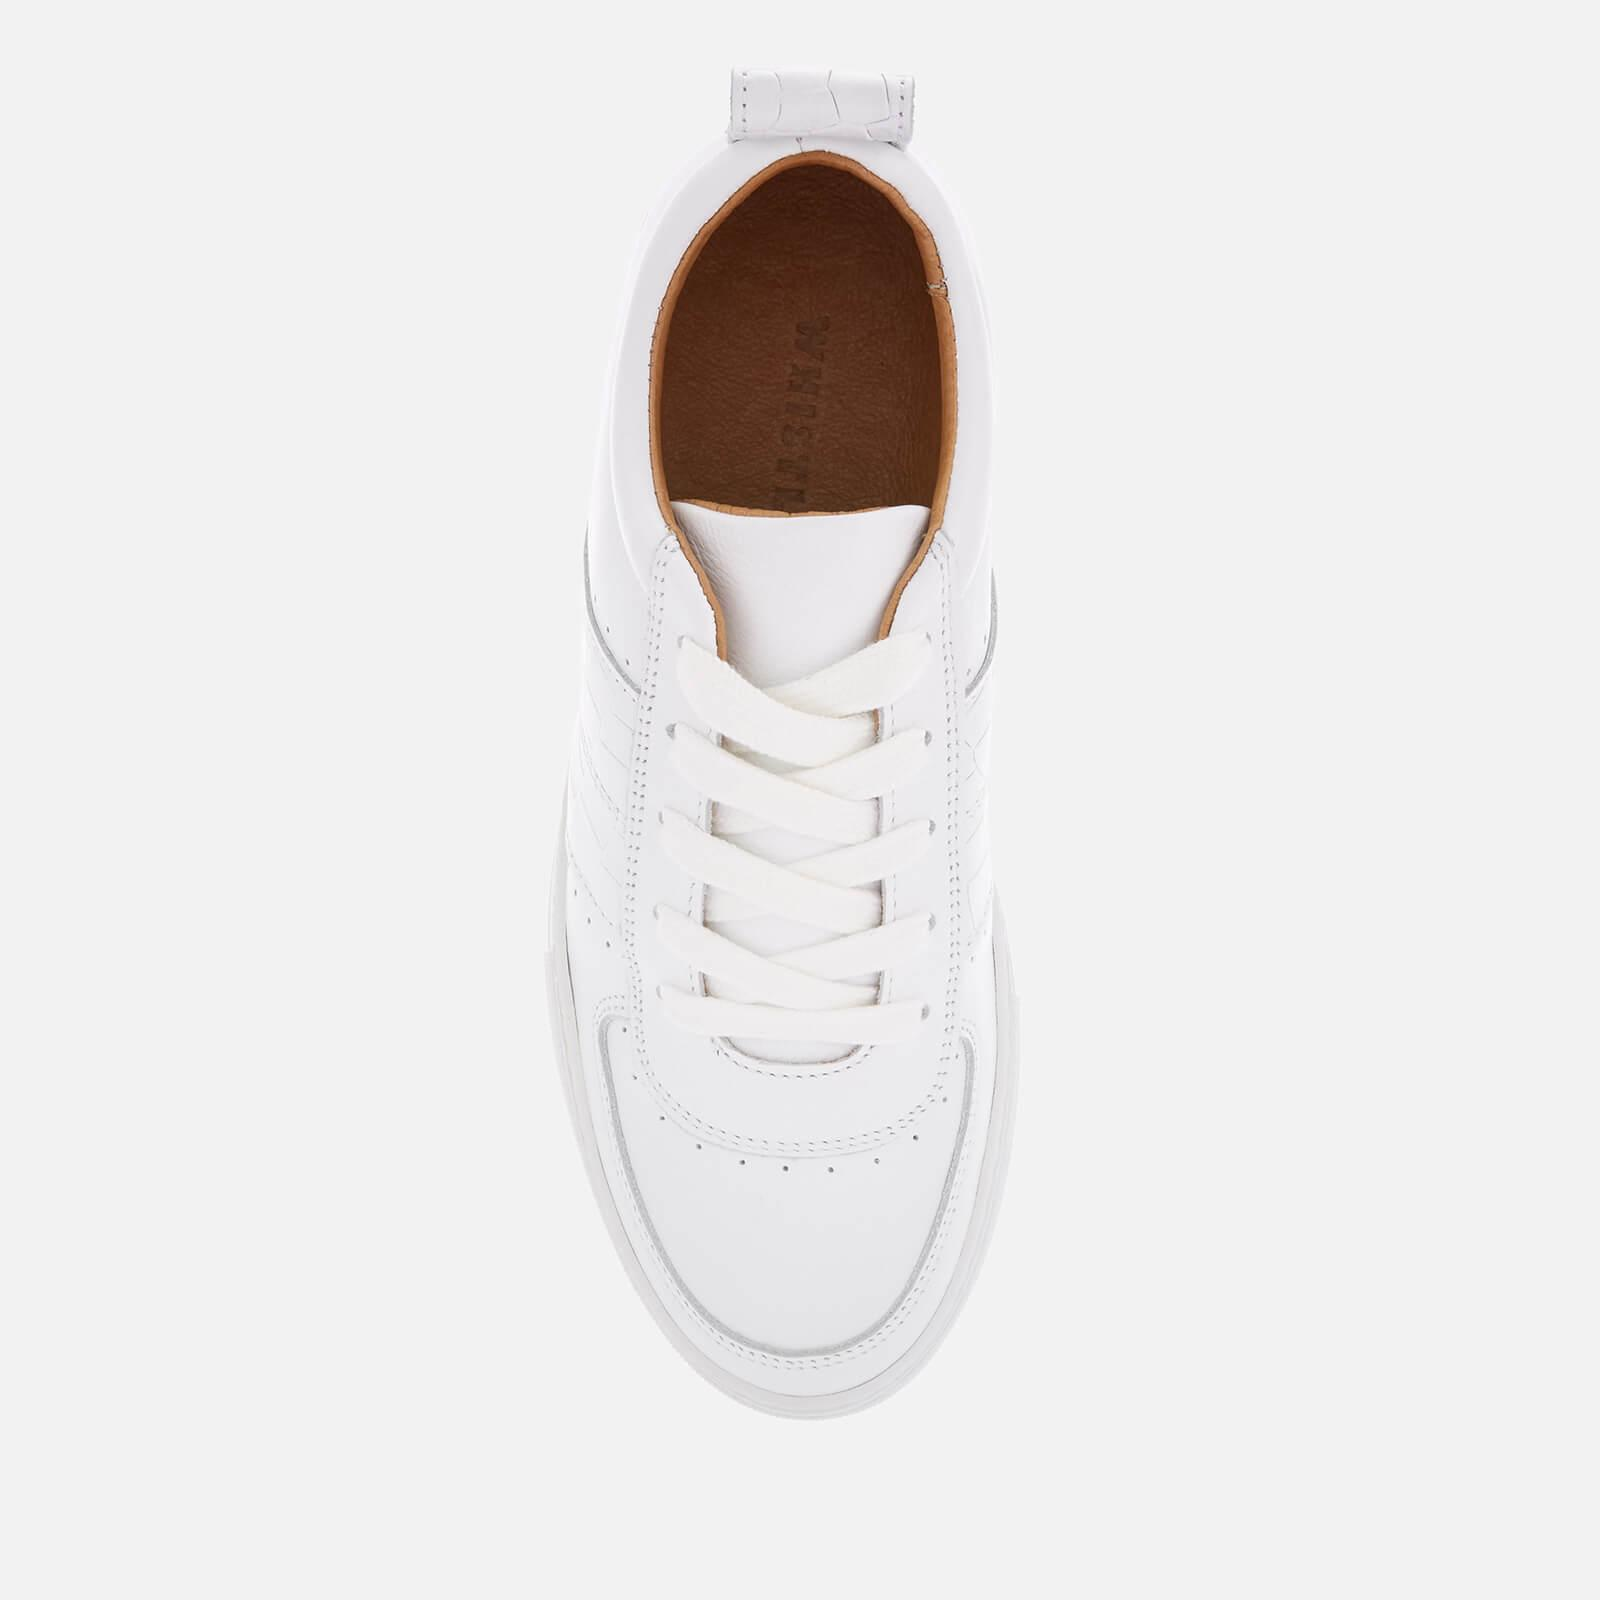 49e8a737f30d74 Whistles - White Anna Low Top Trainers - Lyst. View fullscreen